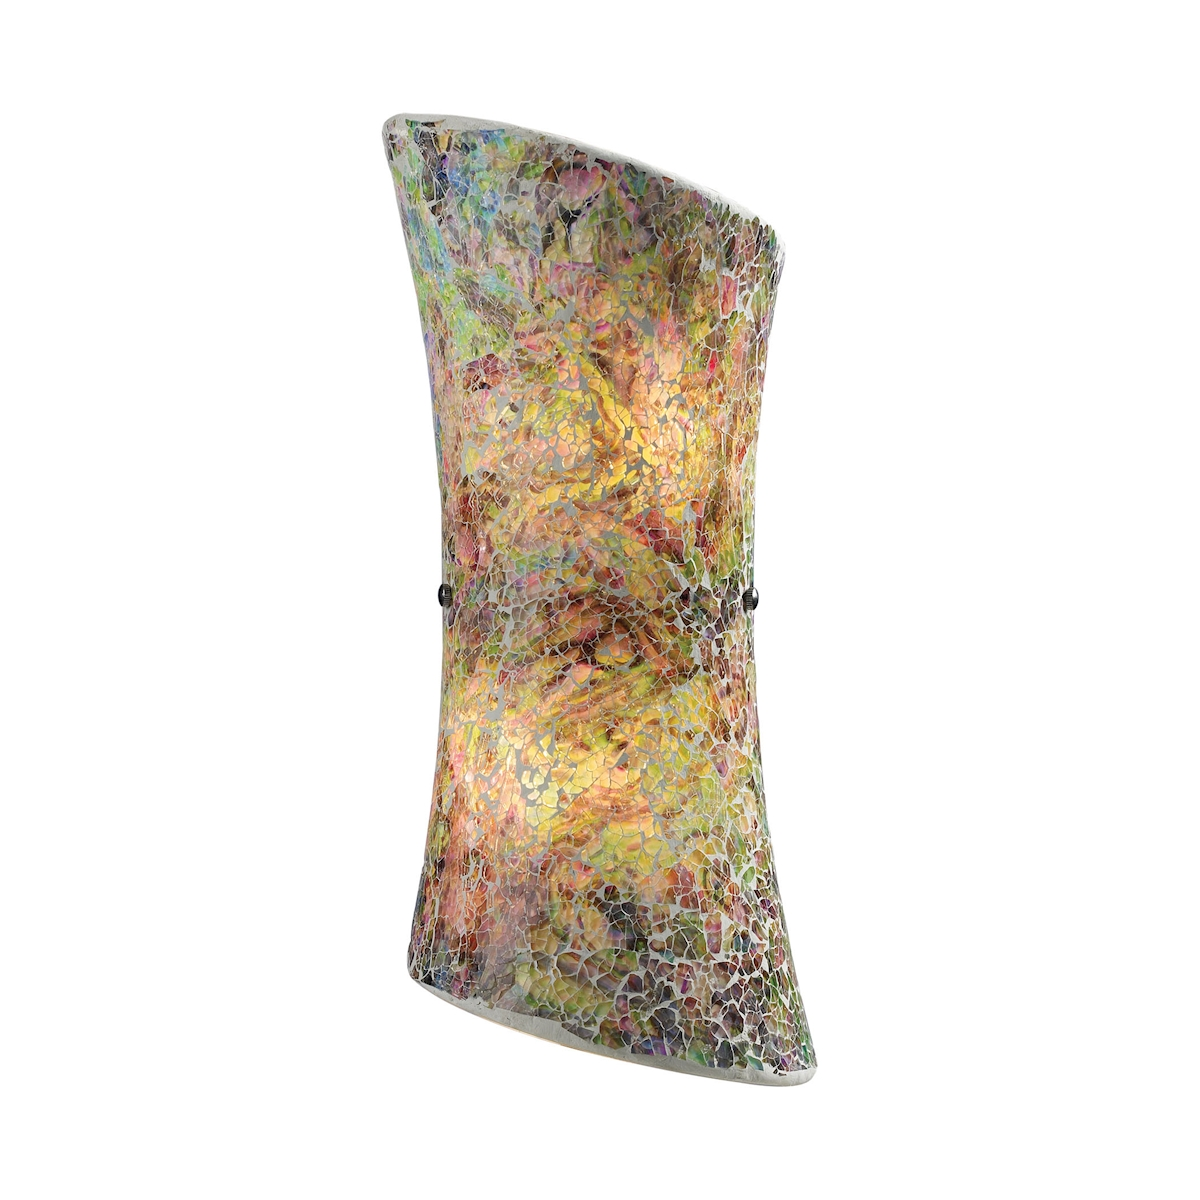 Avalon 2-Light Sconce in Satin Nickel with Multi-colored Crackle Glass_EL-73020-2